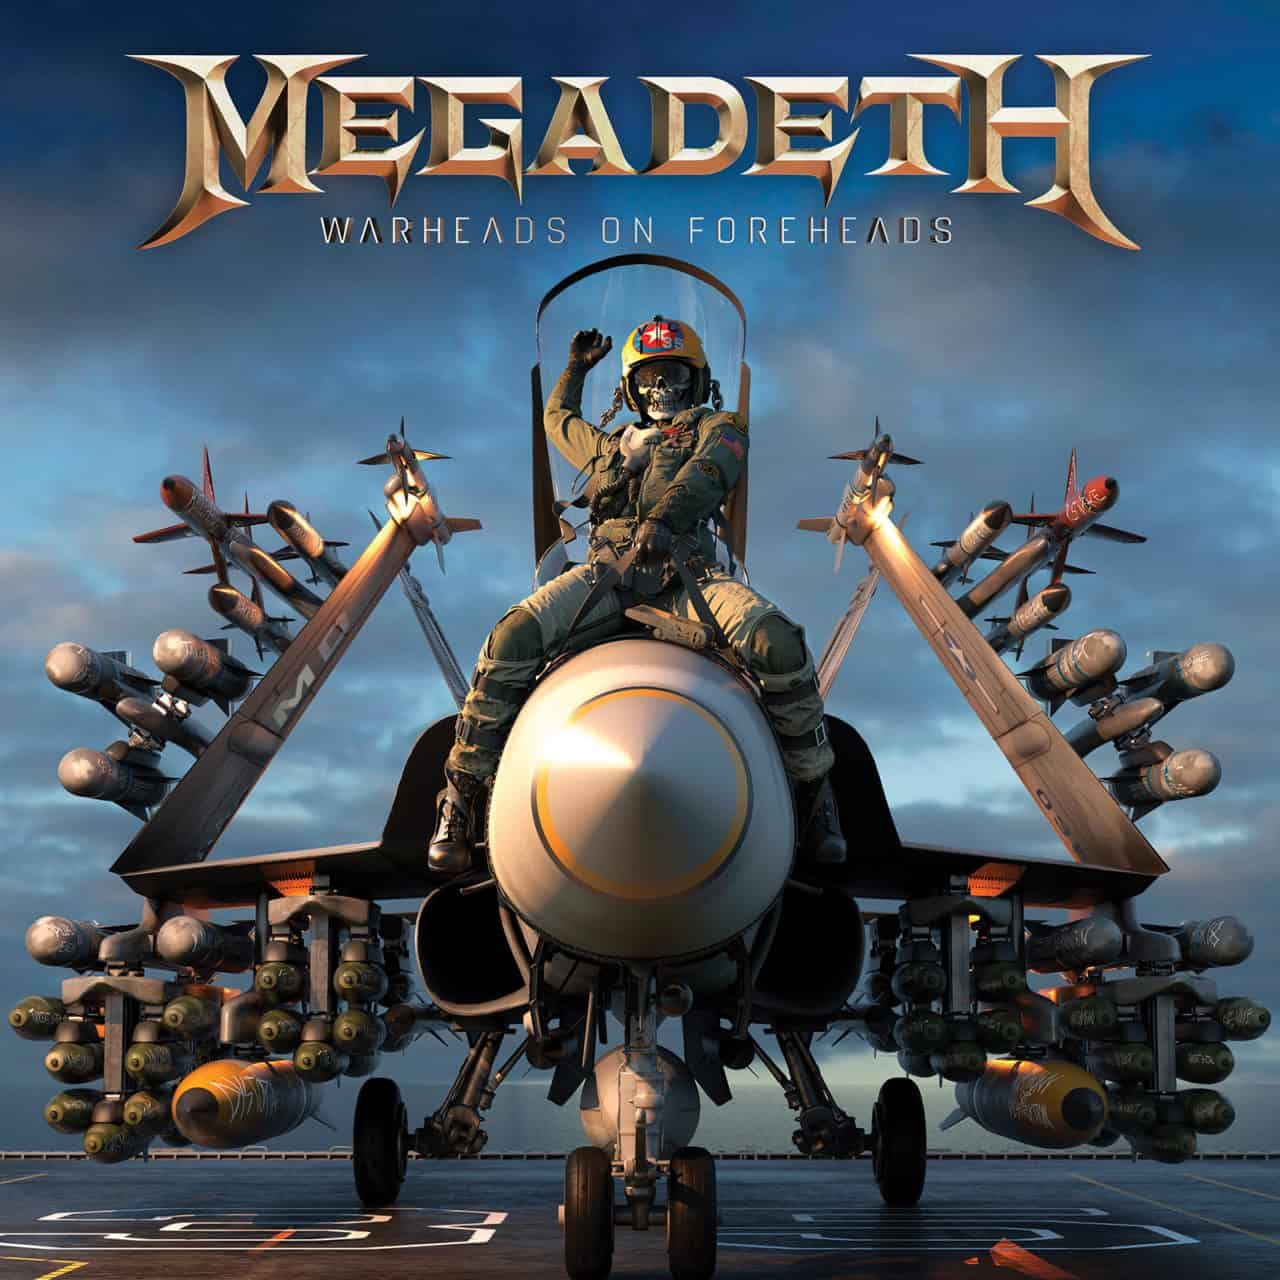 Megadeth Announces 'Warheads On Foreheads' Greatest Hit Collection